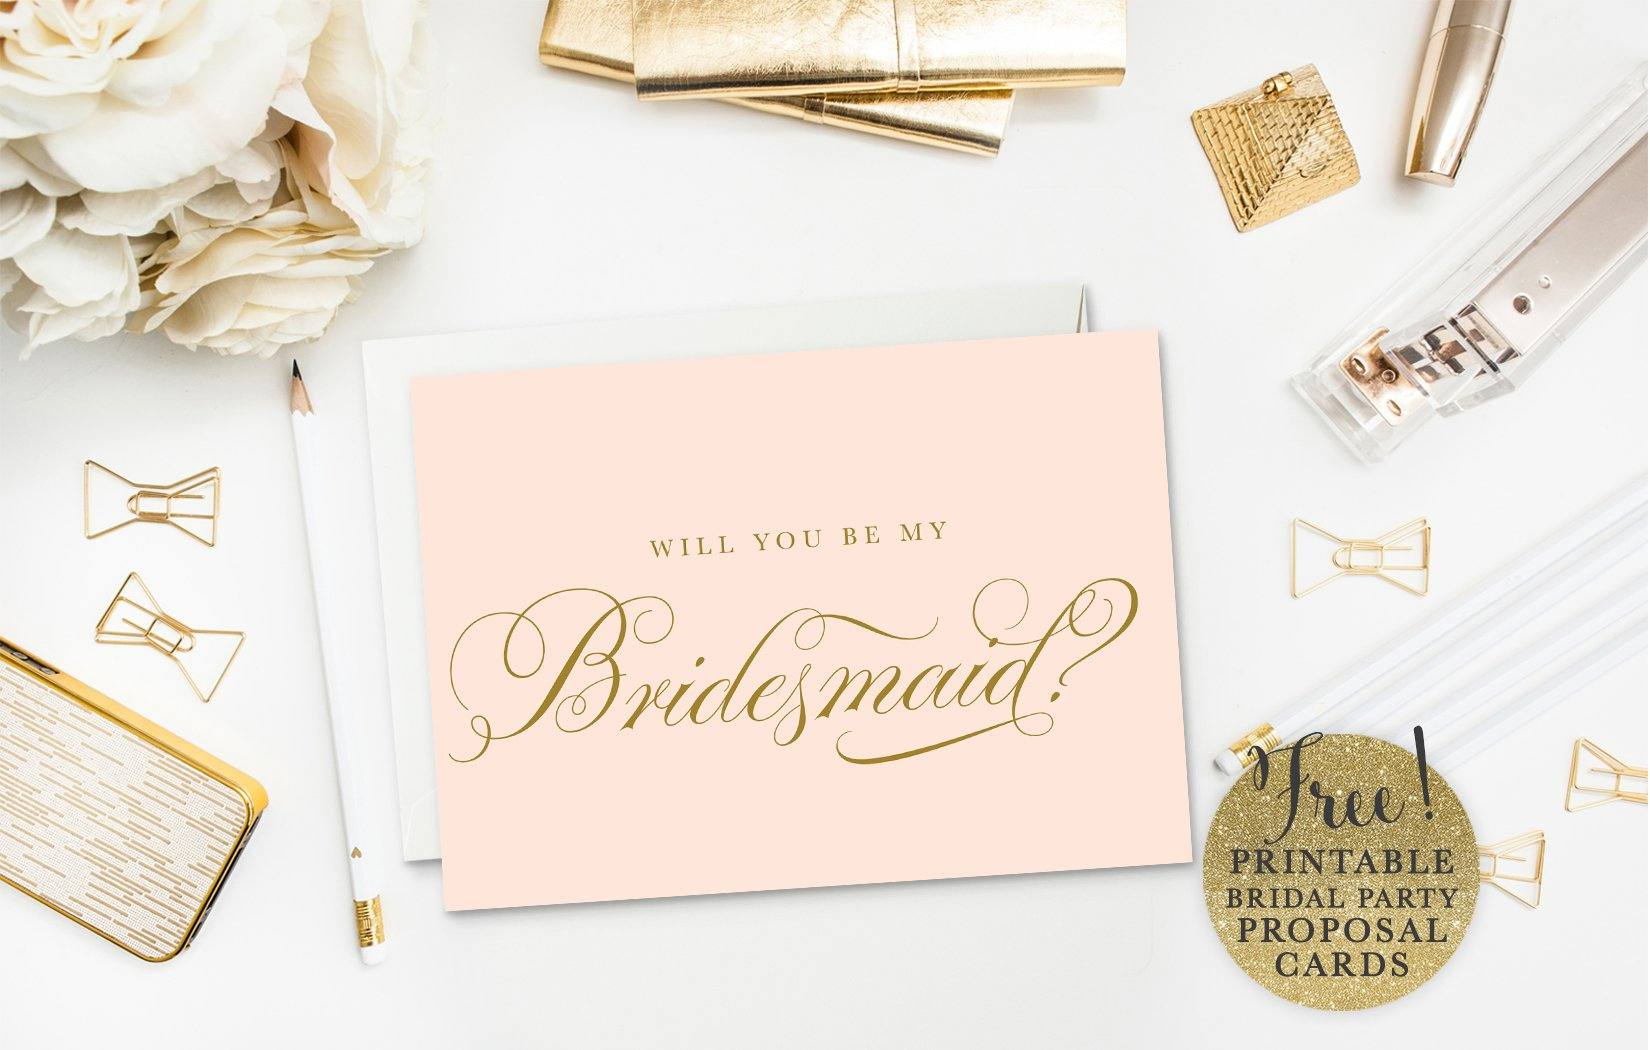 10 Will You Be My Bridesmaid Cards Free Printable